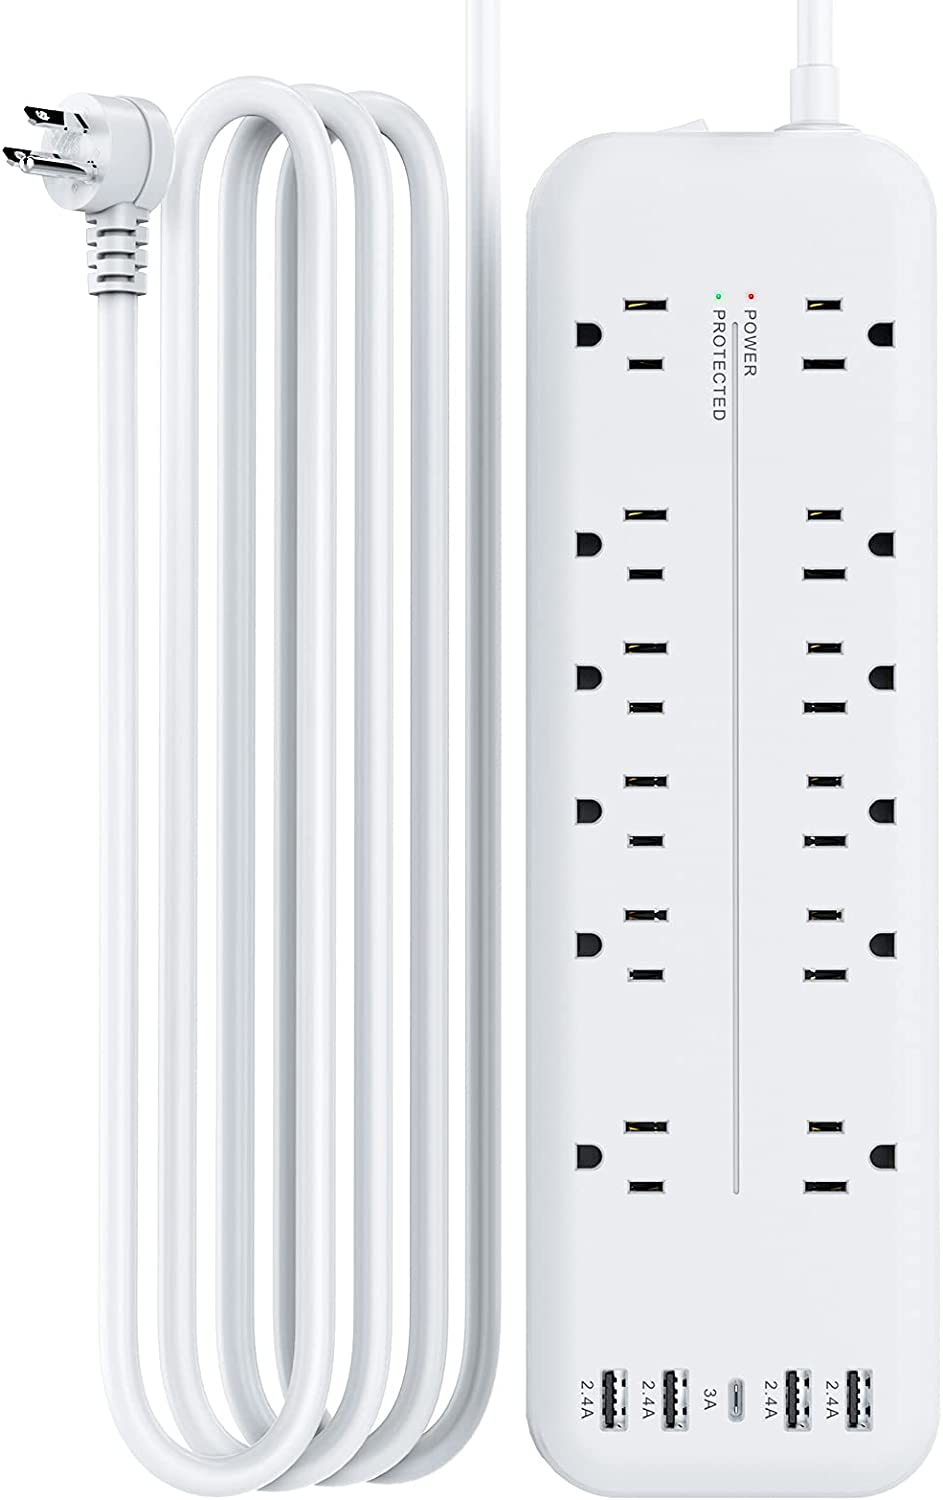 Power Strip 12AC Outlet 4USB+1Type-C Power Strip with 6 Feet Long Extension Cord Surge Protection Outlet Strip Overload Surge Protection for for Home and Office